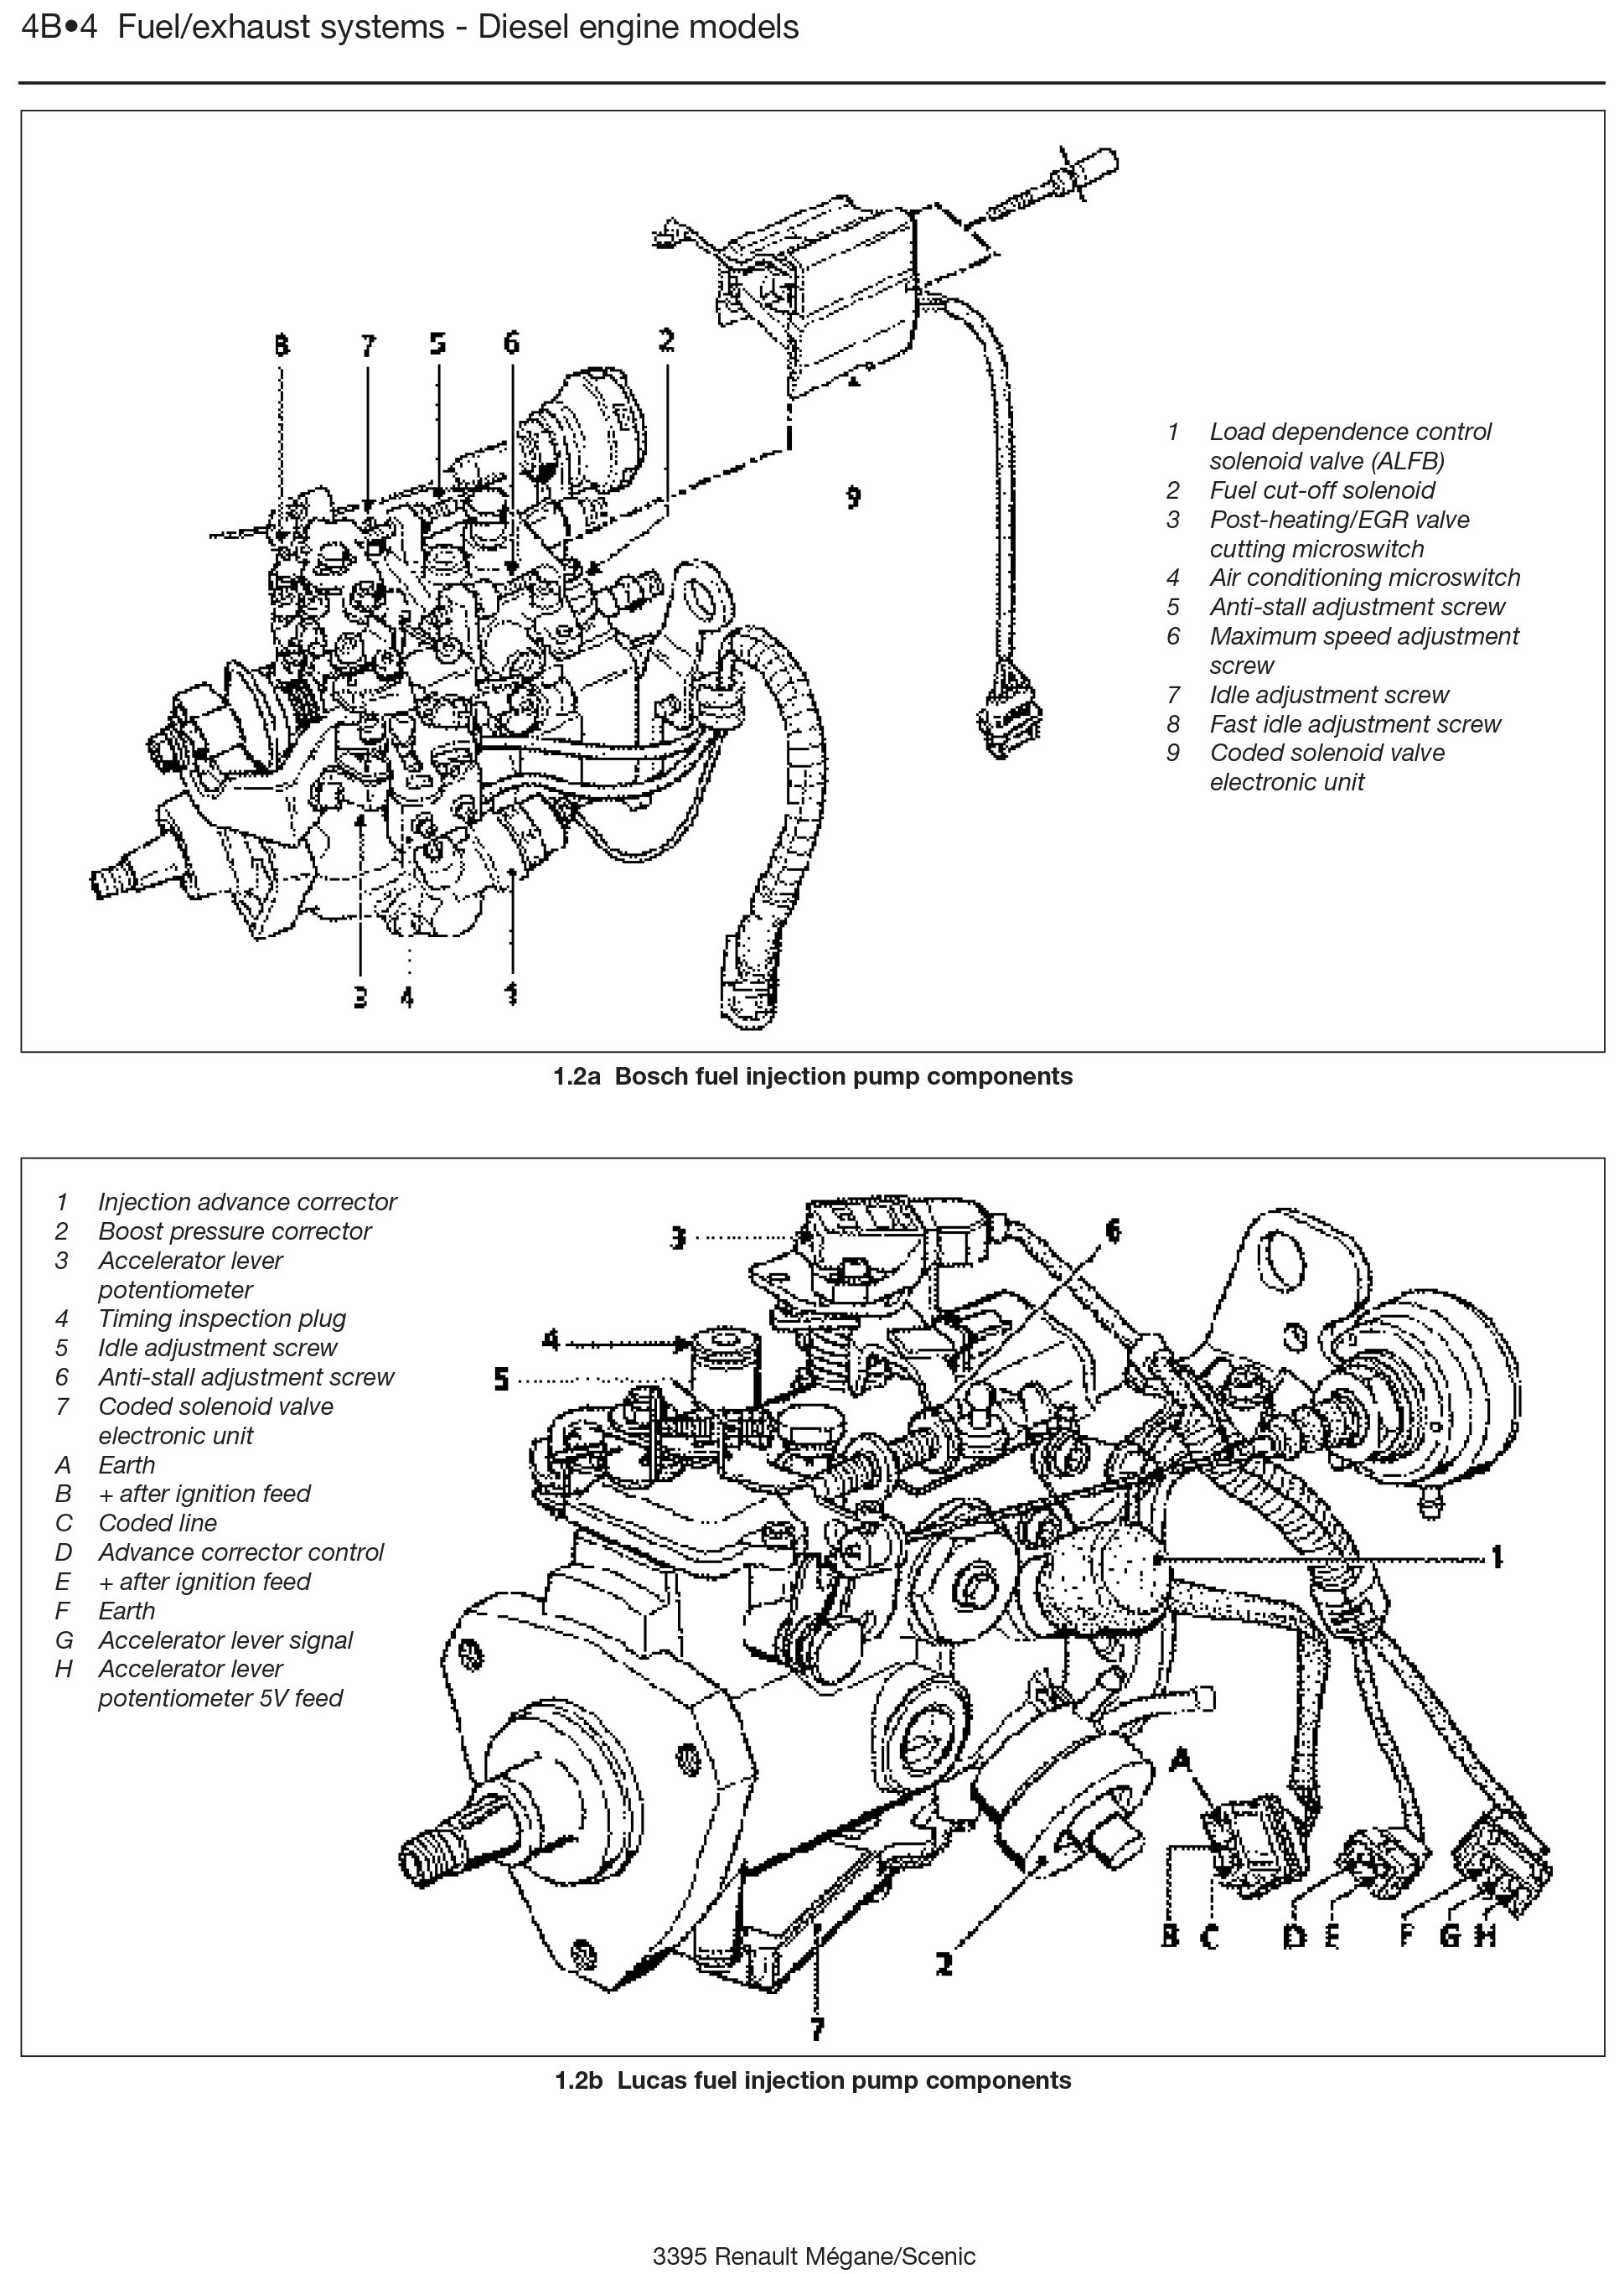 Diagram Chevy G20 Engine Diagram Full Version Hd Quality Engine Diagram Pvdiagramwiltzr Portaimprese It